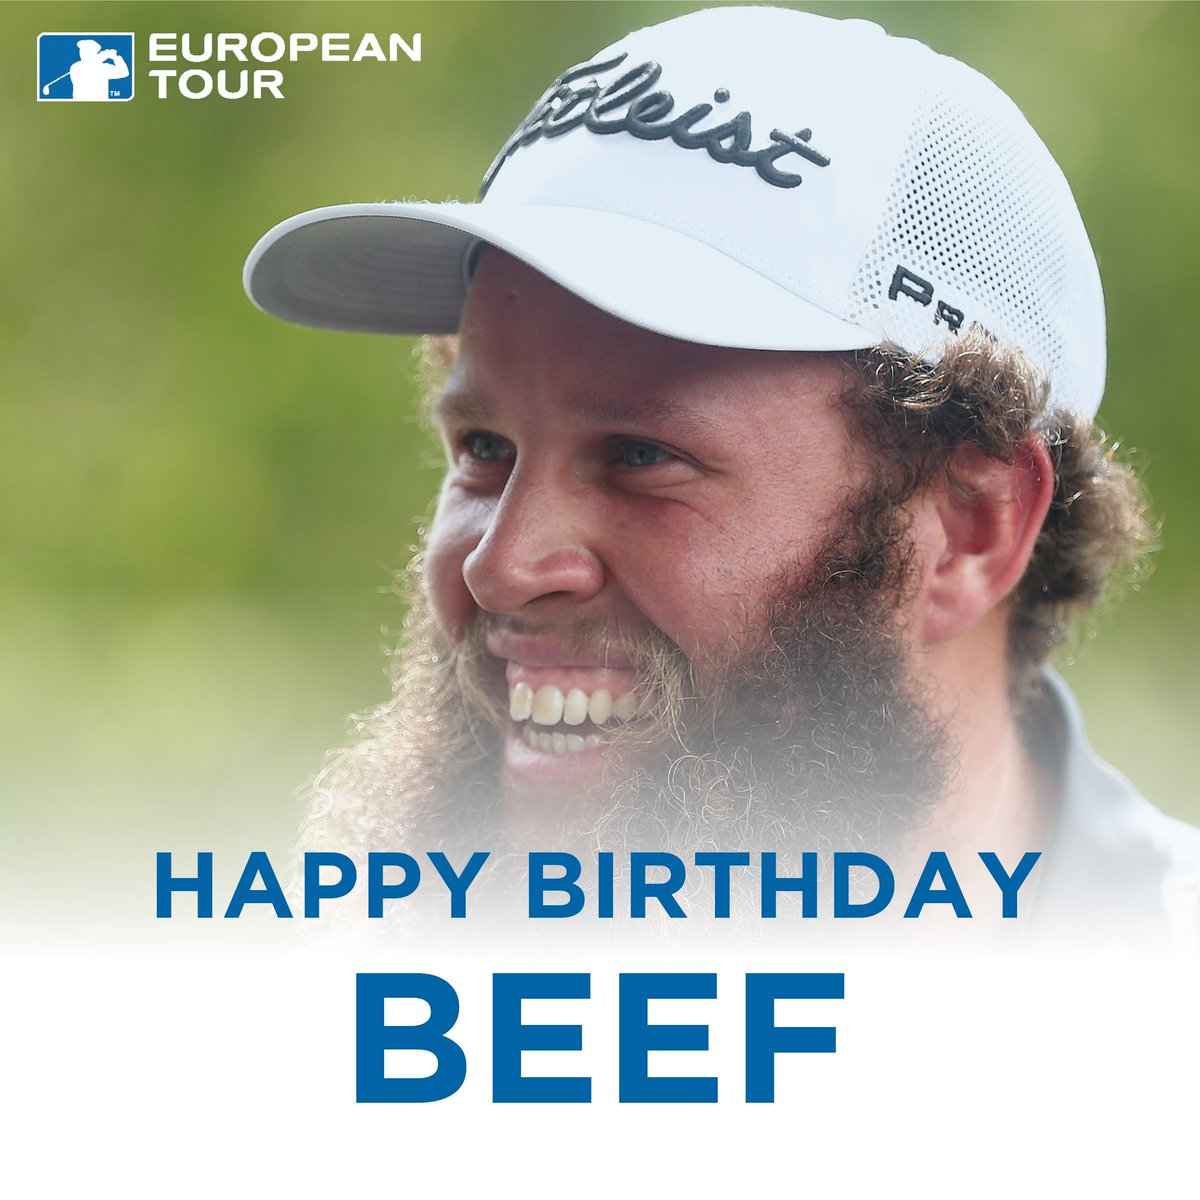 February 18 - a good day for golf 😉  Happy birthday to @BeefGolf and @thomasbjorngolf 🎂